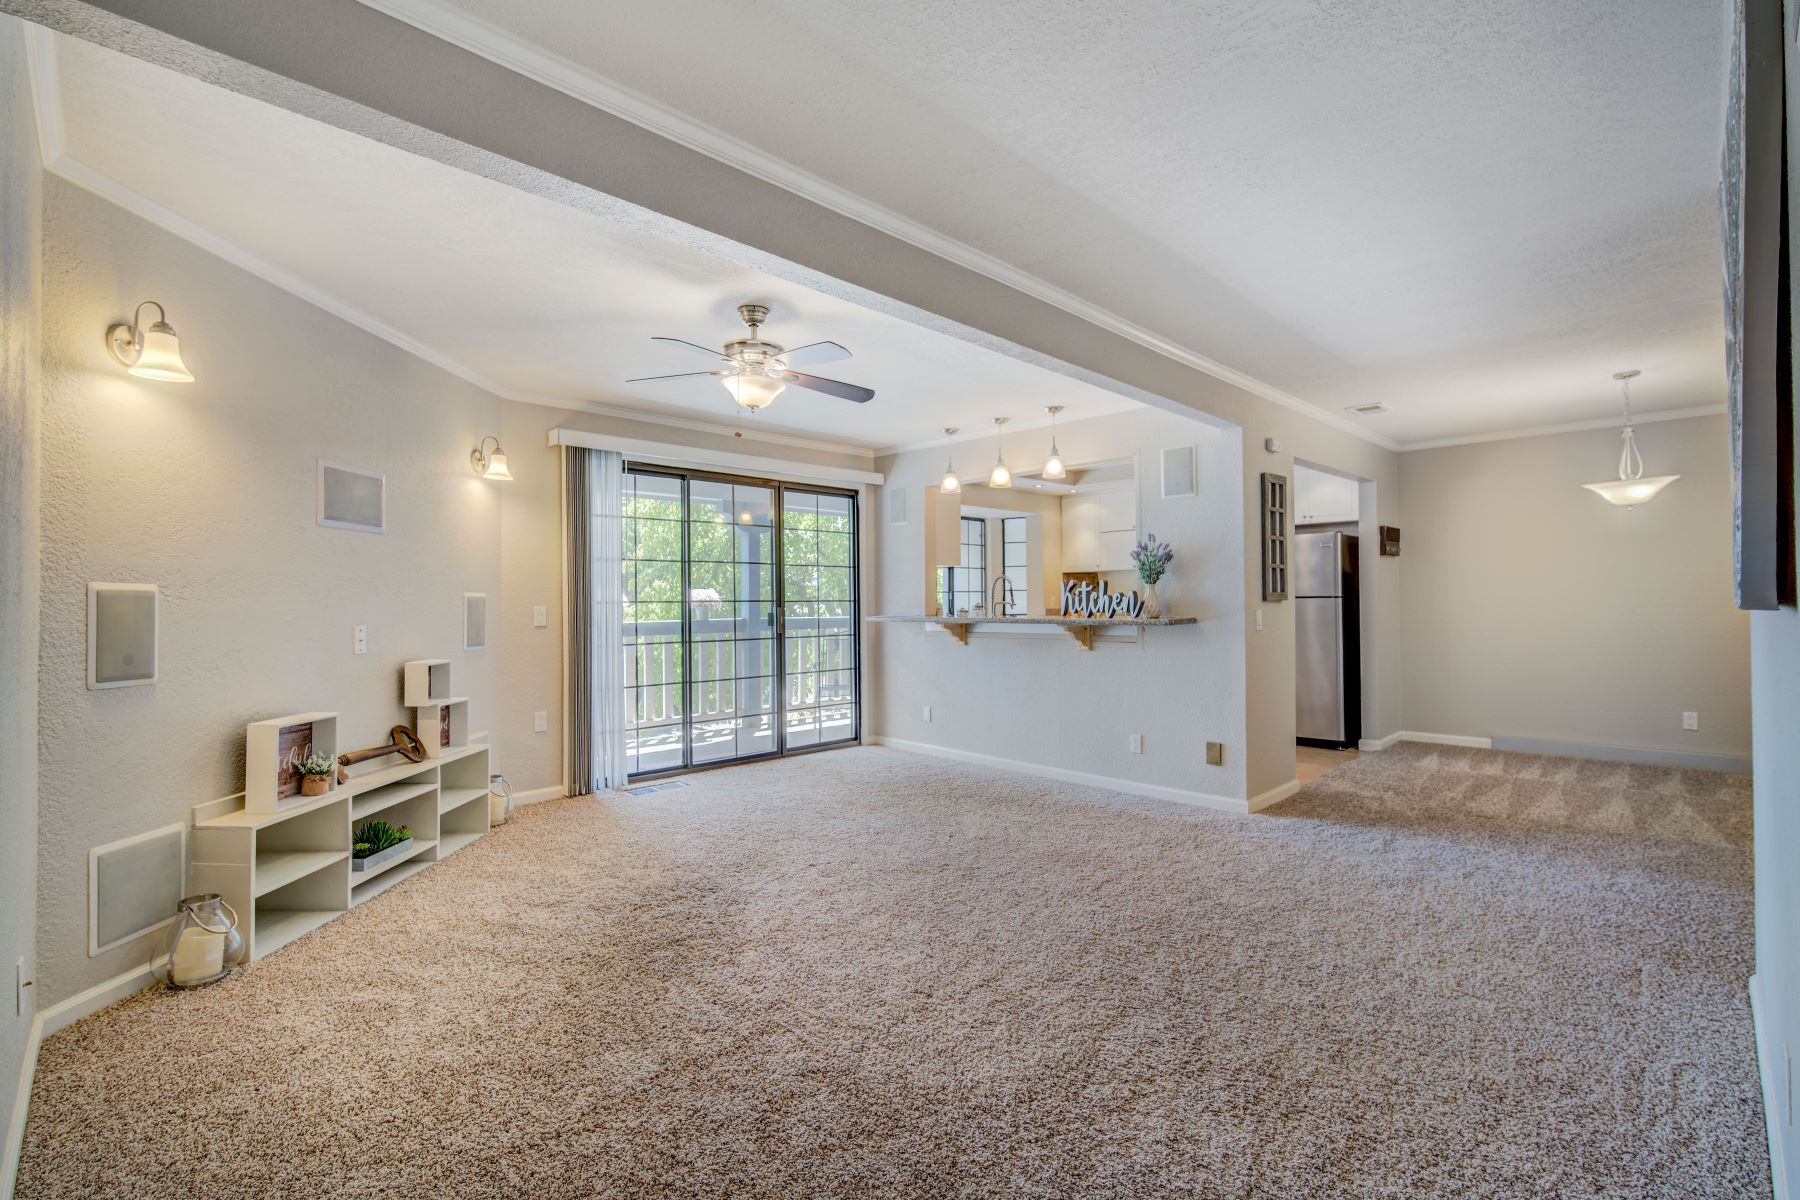 Single Family Homes for Active at 5829 San Juan, Citrus Heights, CA, 95610 5829 San Juan 9 Citrus Heights, California 95610 United States